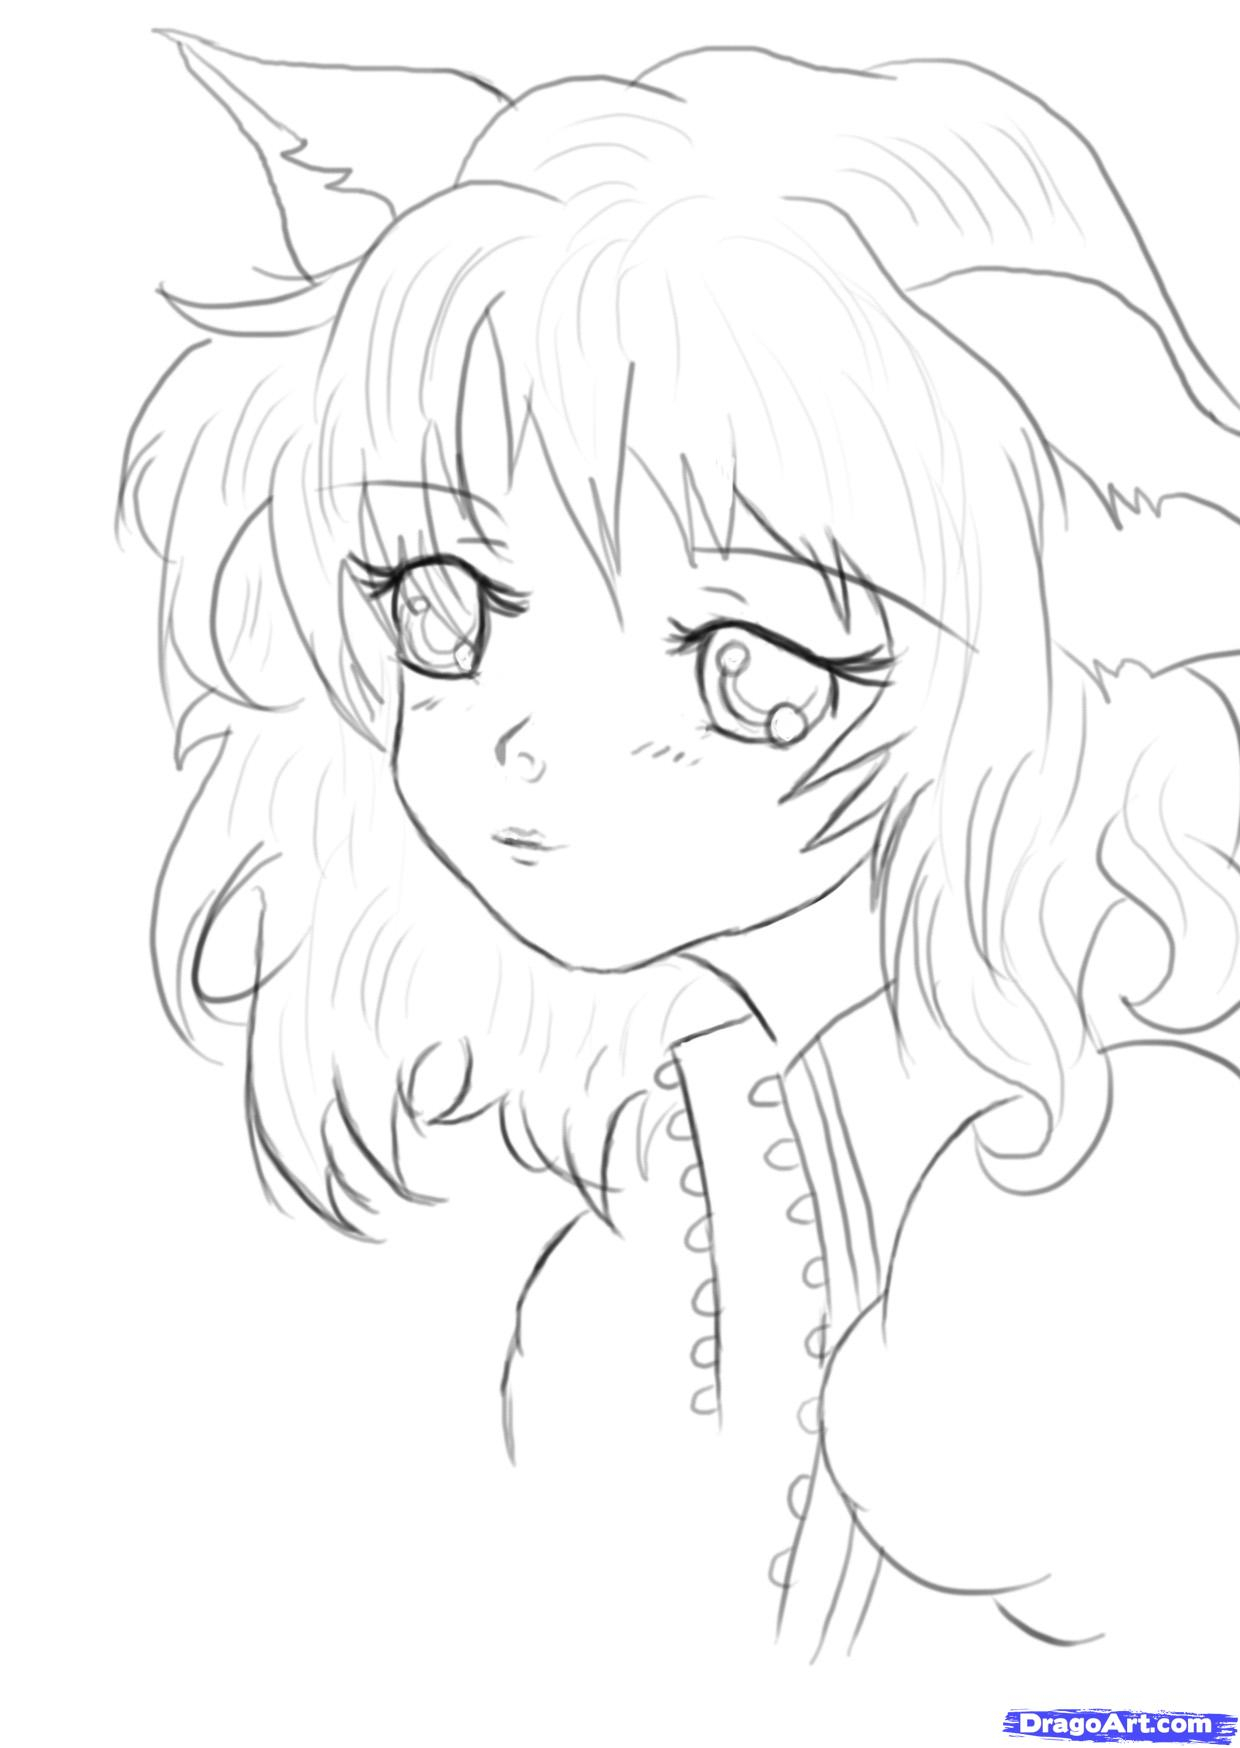 anime girl easy to draw anime girl drawing easy at getdrawings free download draw anime girl easy to